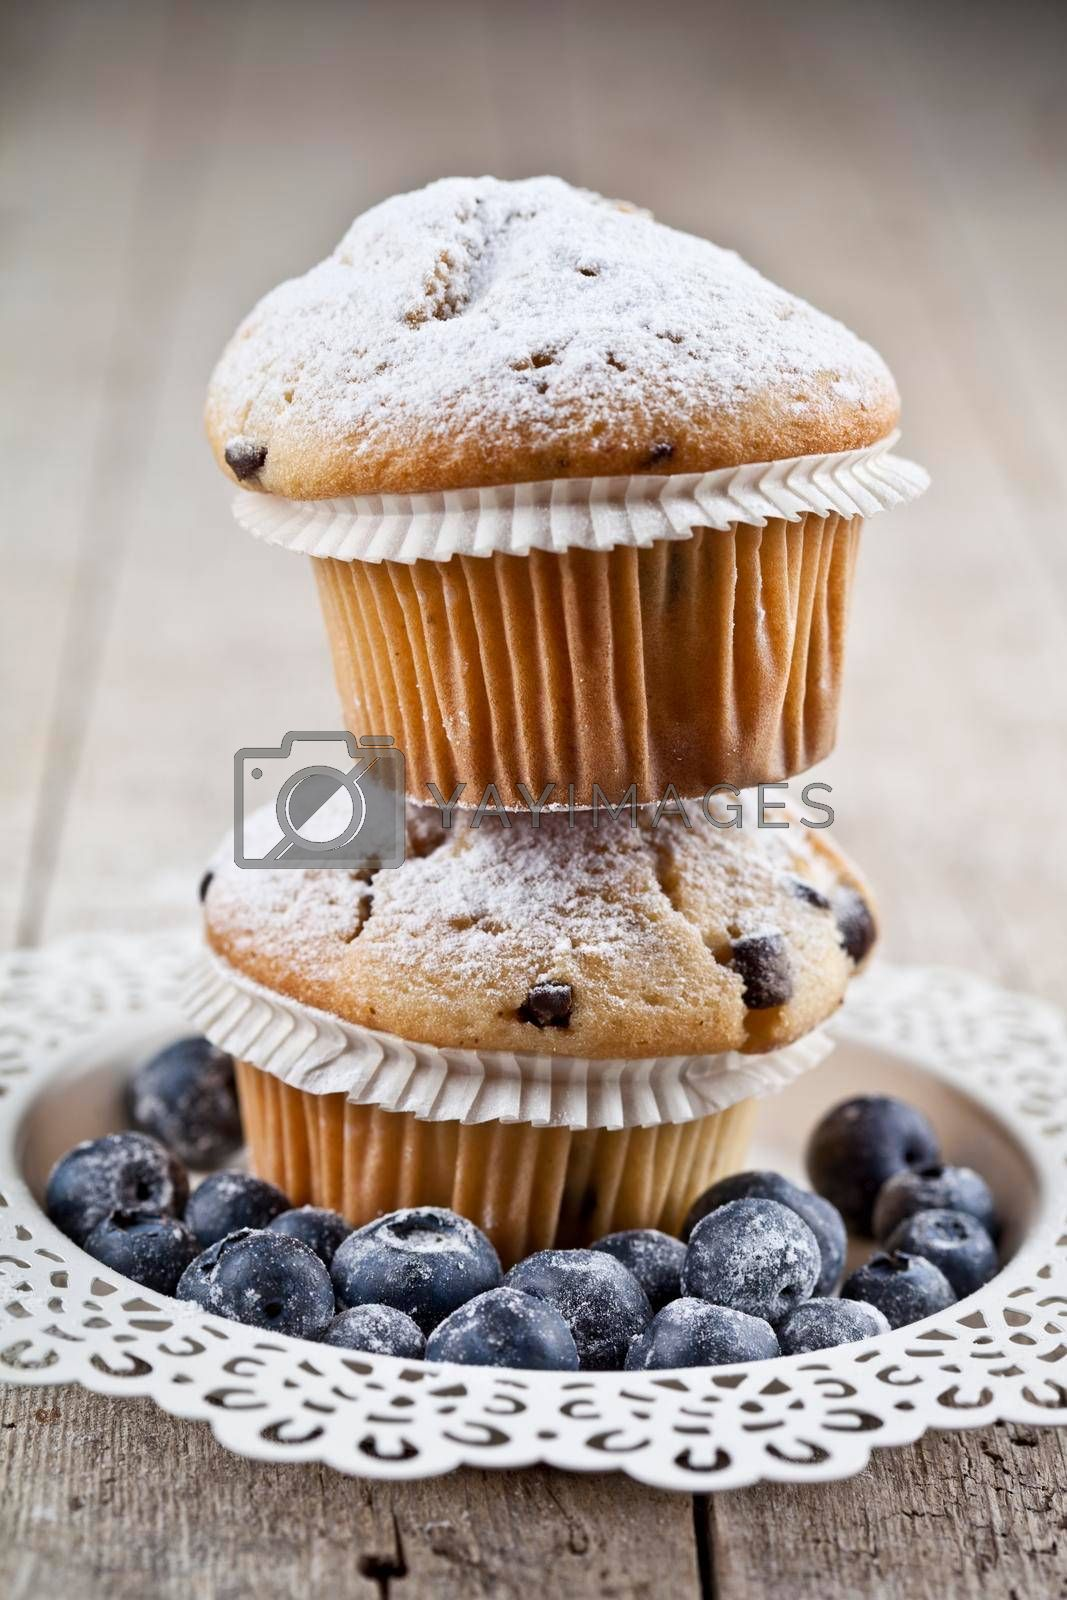 Two homemade fresh muffins with sugar powder and blueberries on white plate on rustic wooden table background.